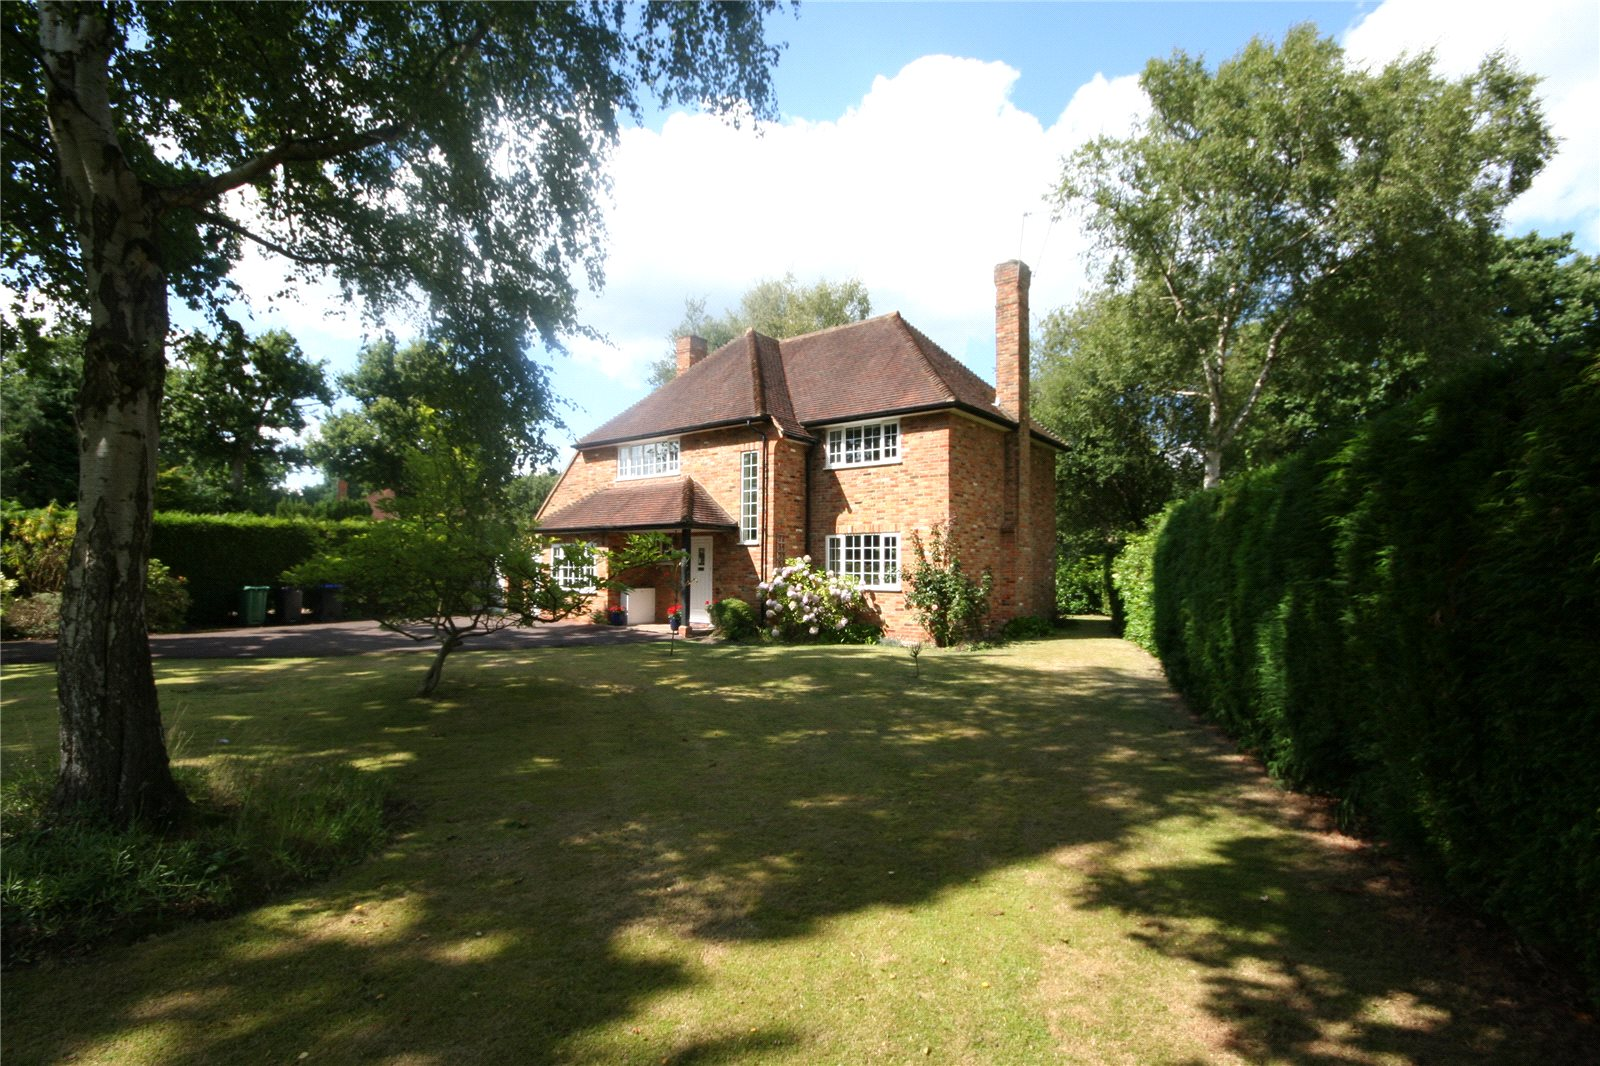 Частный дом для того Продажа на Howards Thicket, Gerrards Cross, Buckinghamshire, SL9 Gerrards Cross, Англия